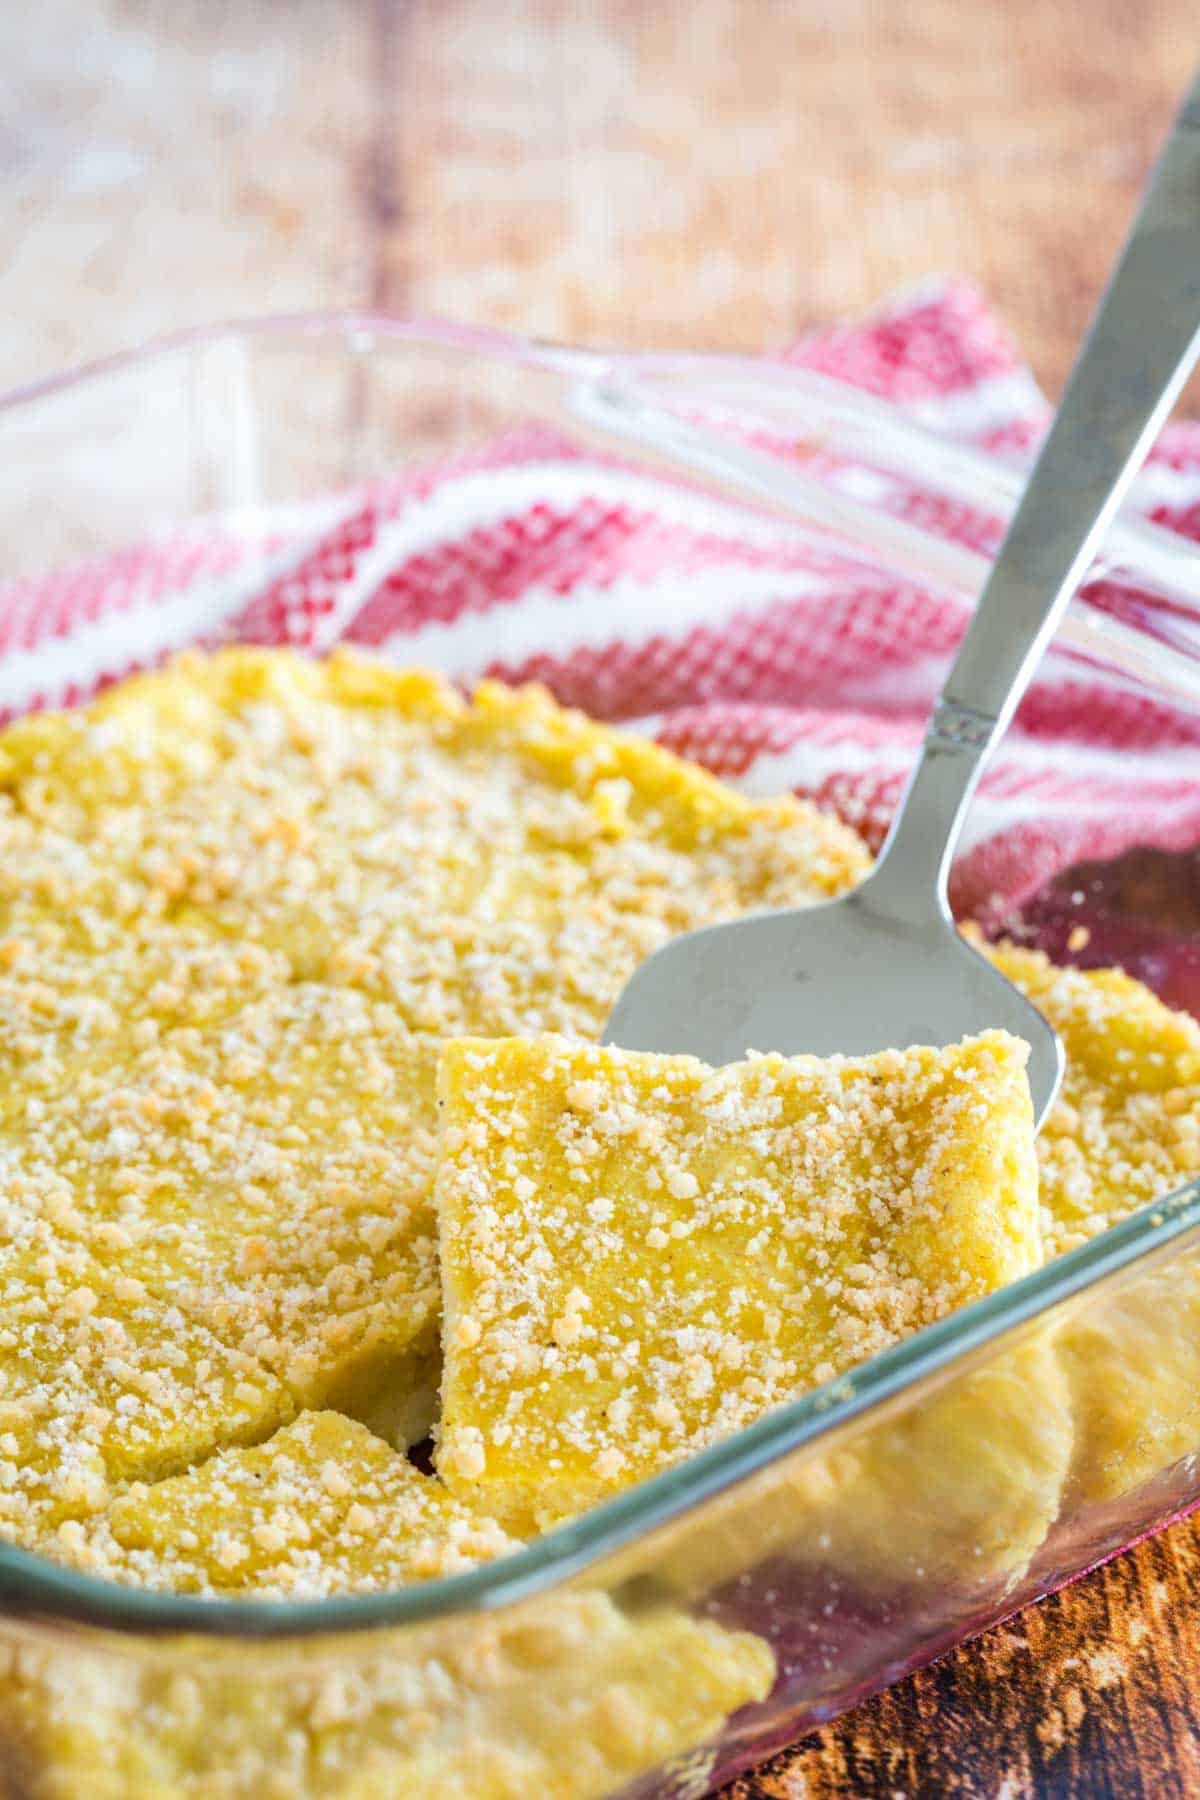 silver spatula lifting a square of baked polenta with parmesan cheese on top from a glass baking dish